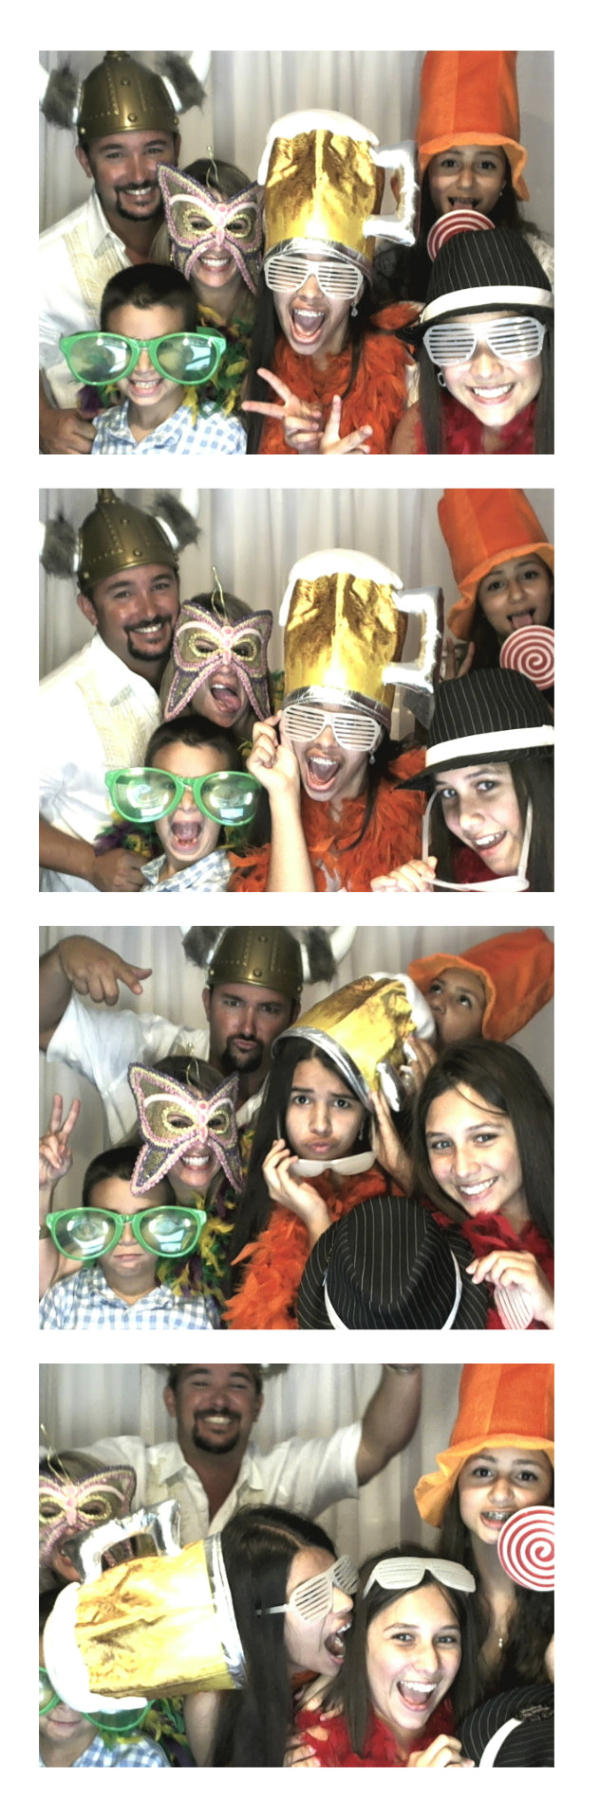 Wedding rental photo booth